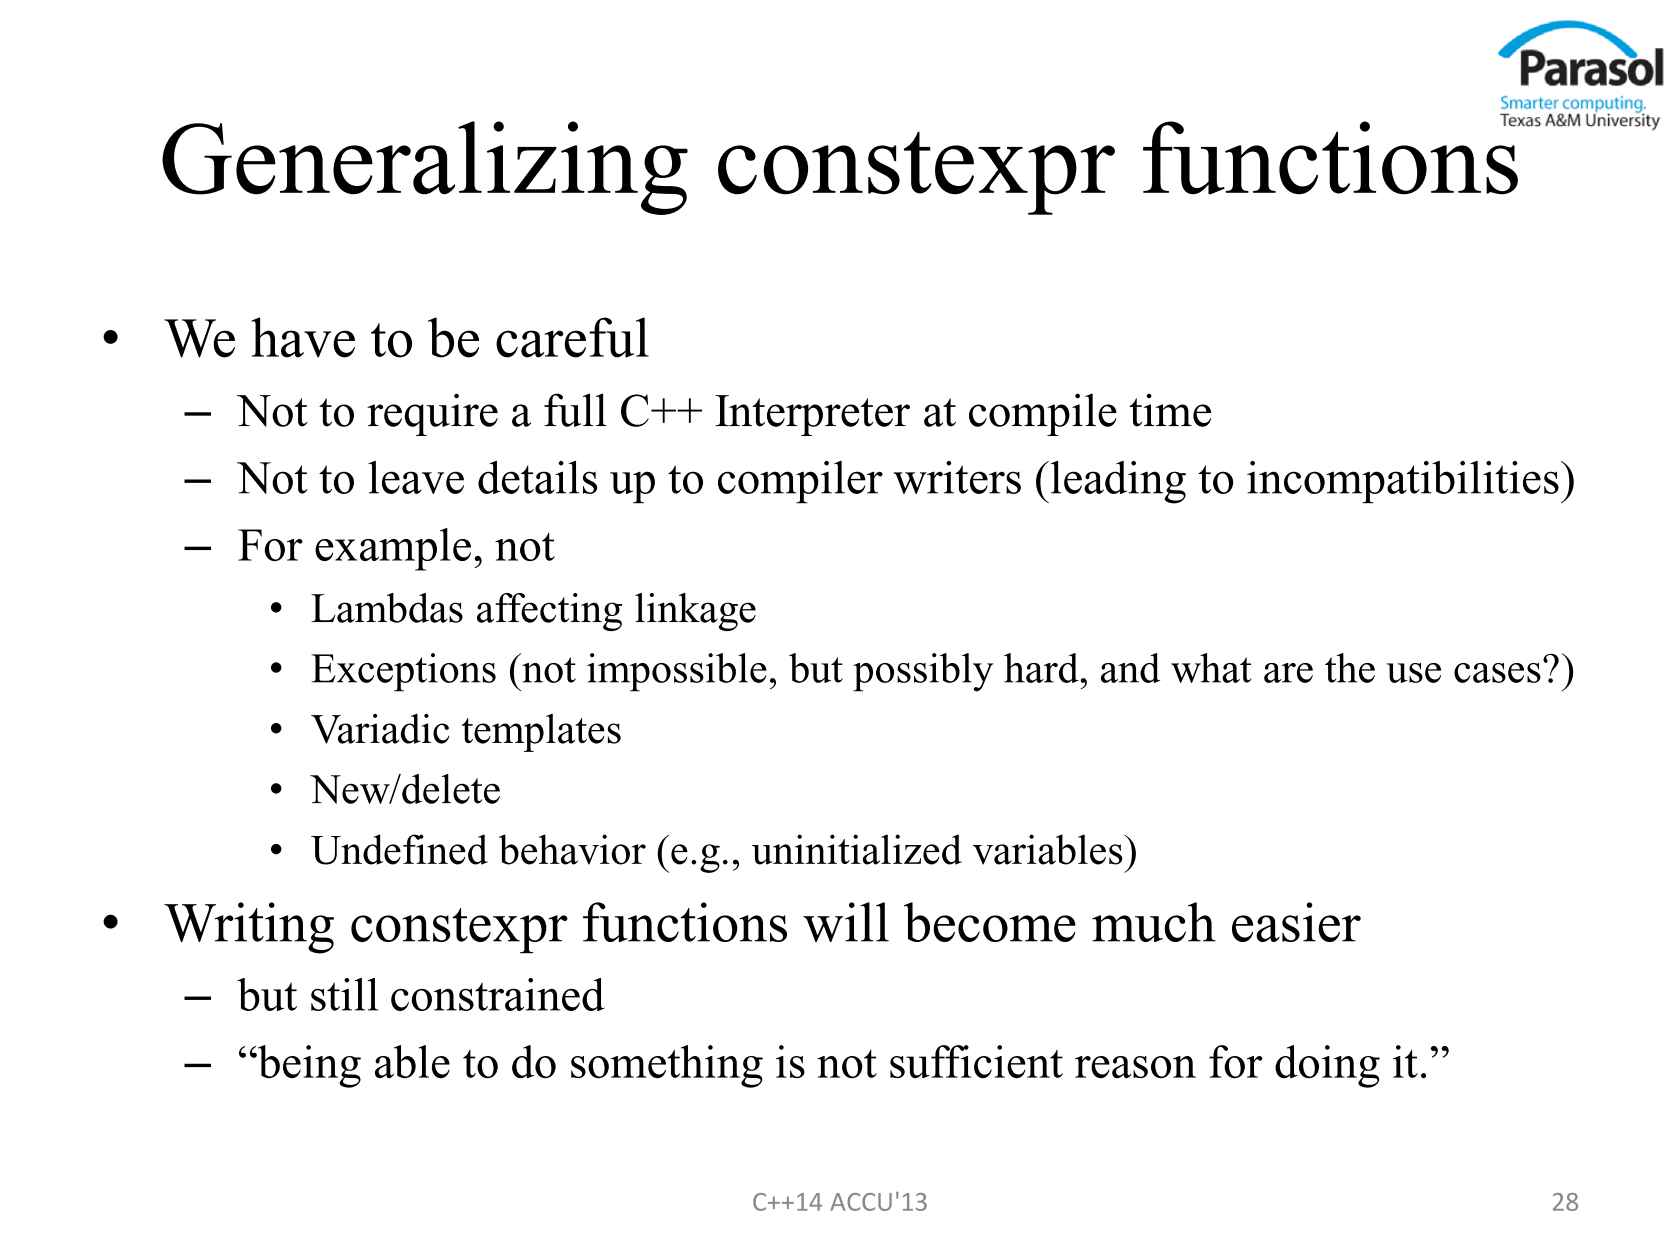 C++14 Early Thoughts